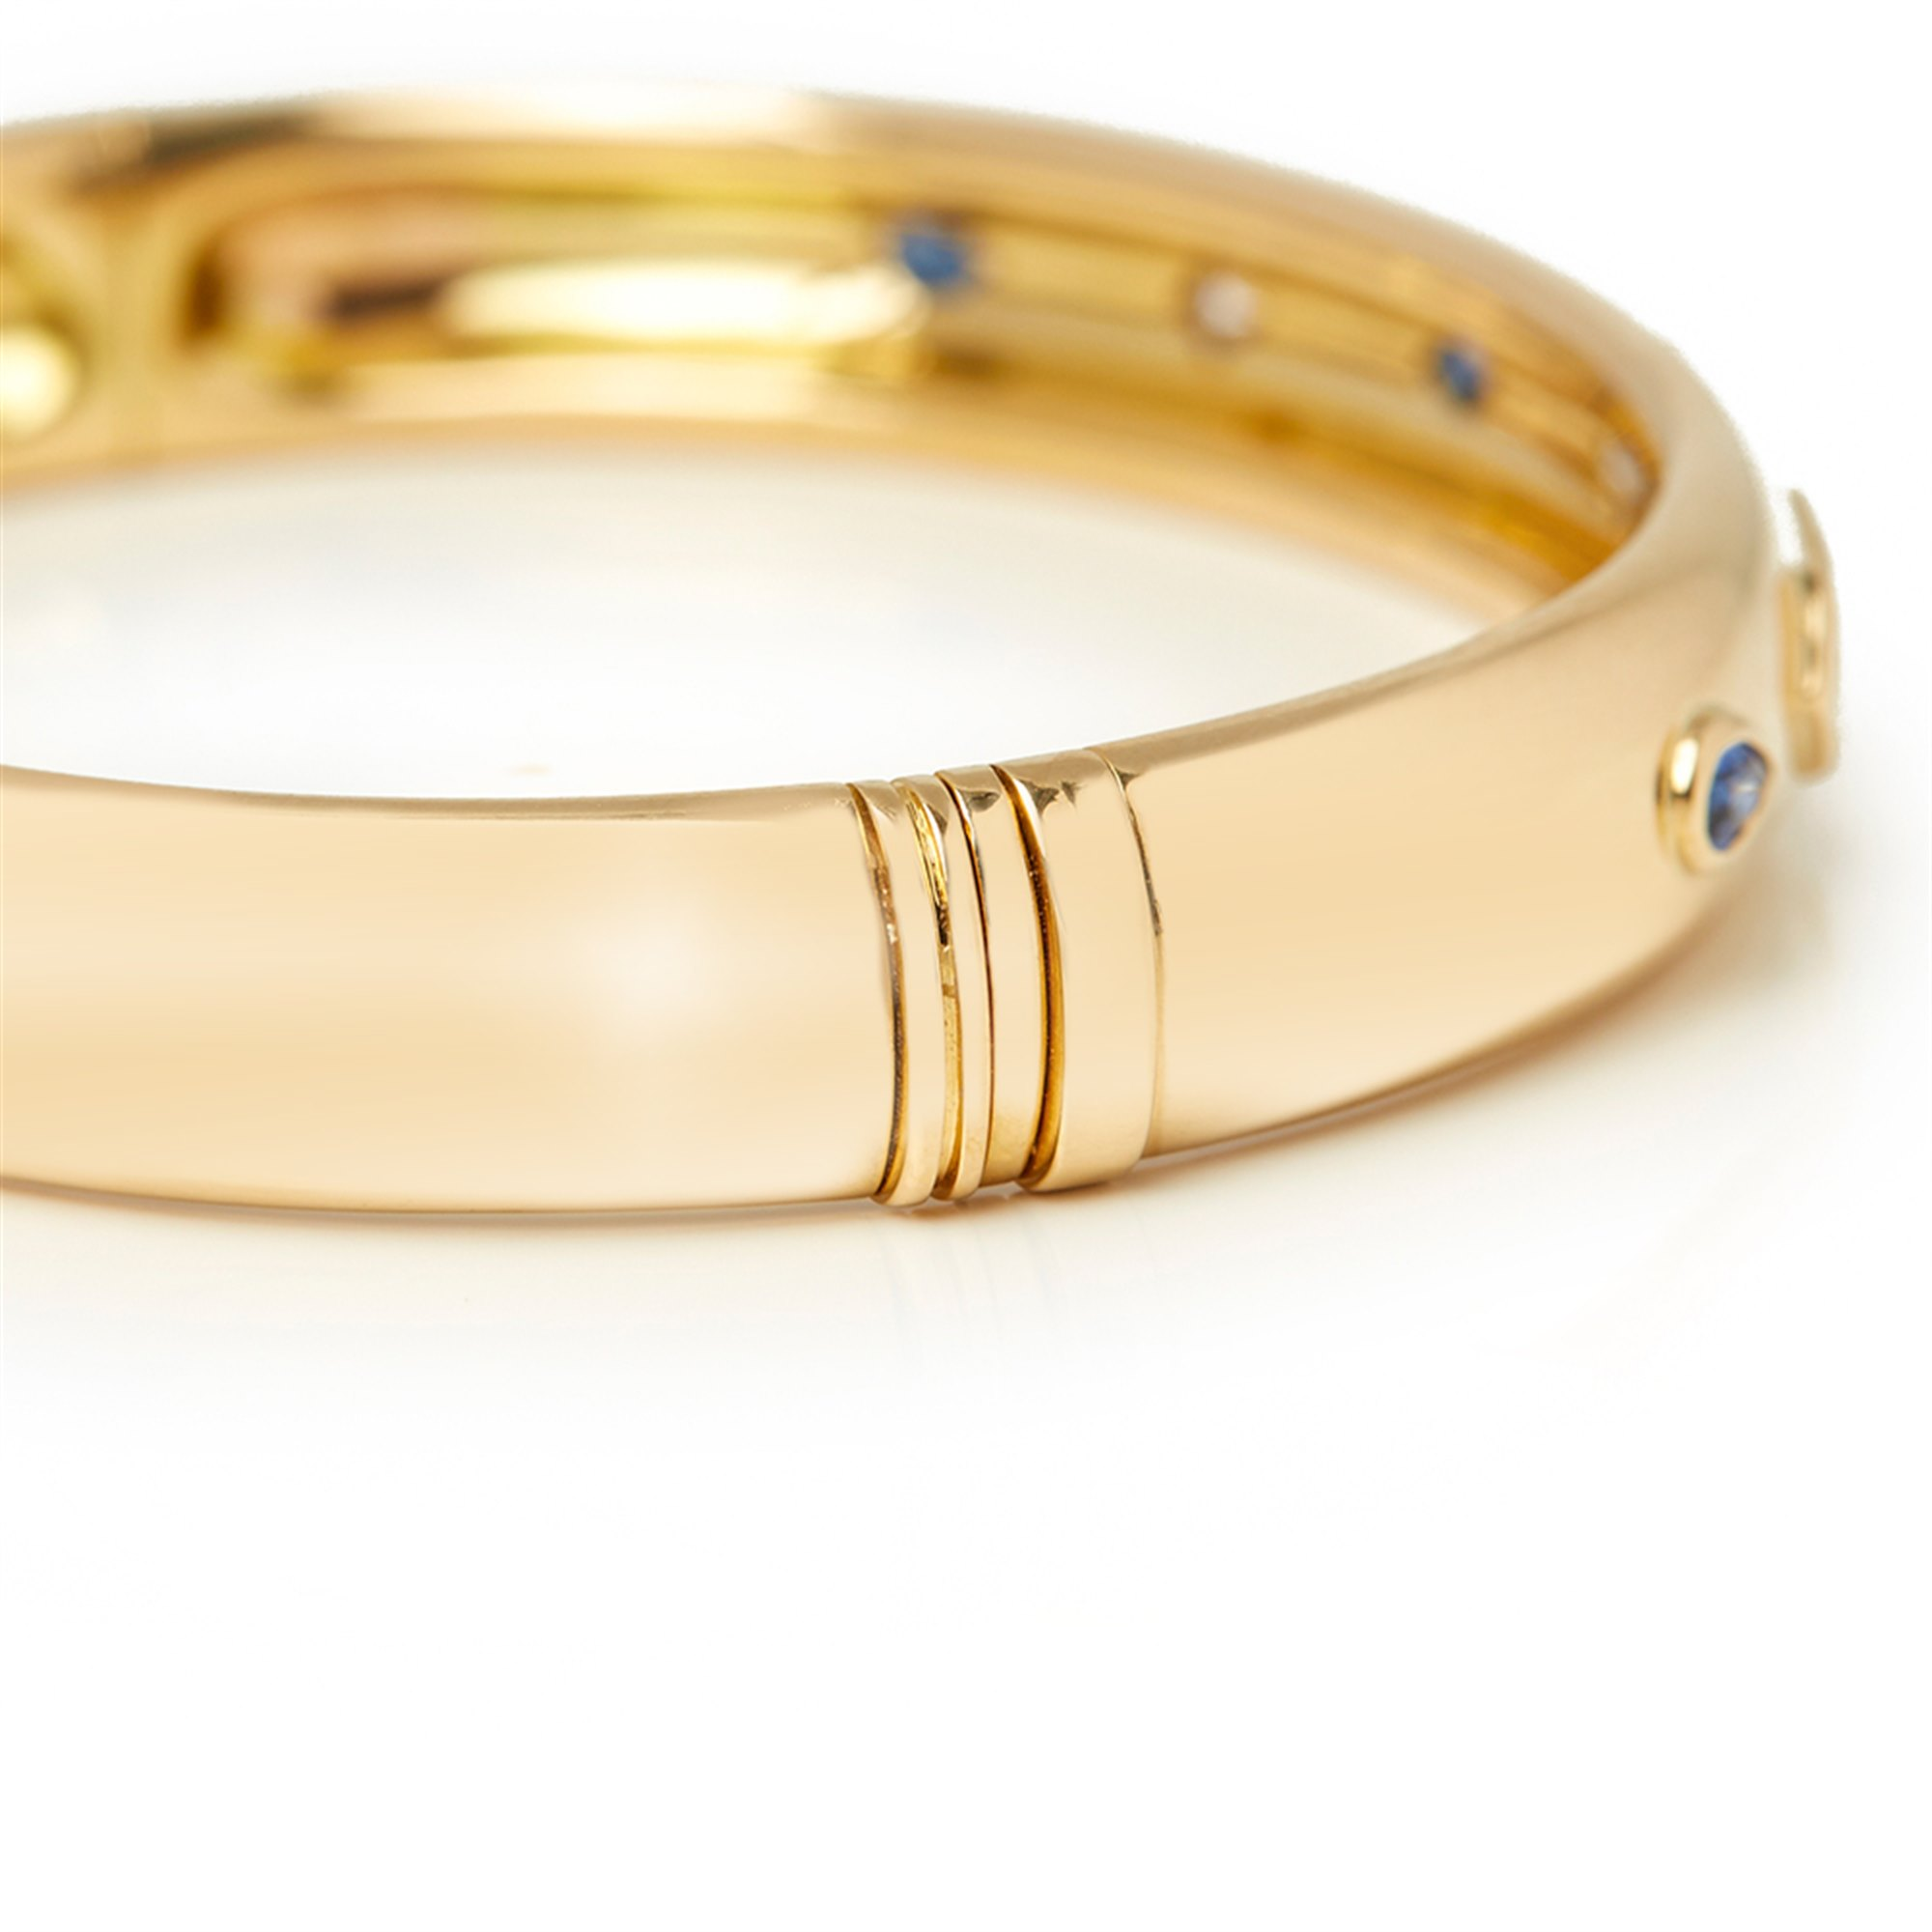 Cartier 18k Yellow Gold Sapphire & Diamond Must De Cartier Bracelet